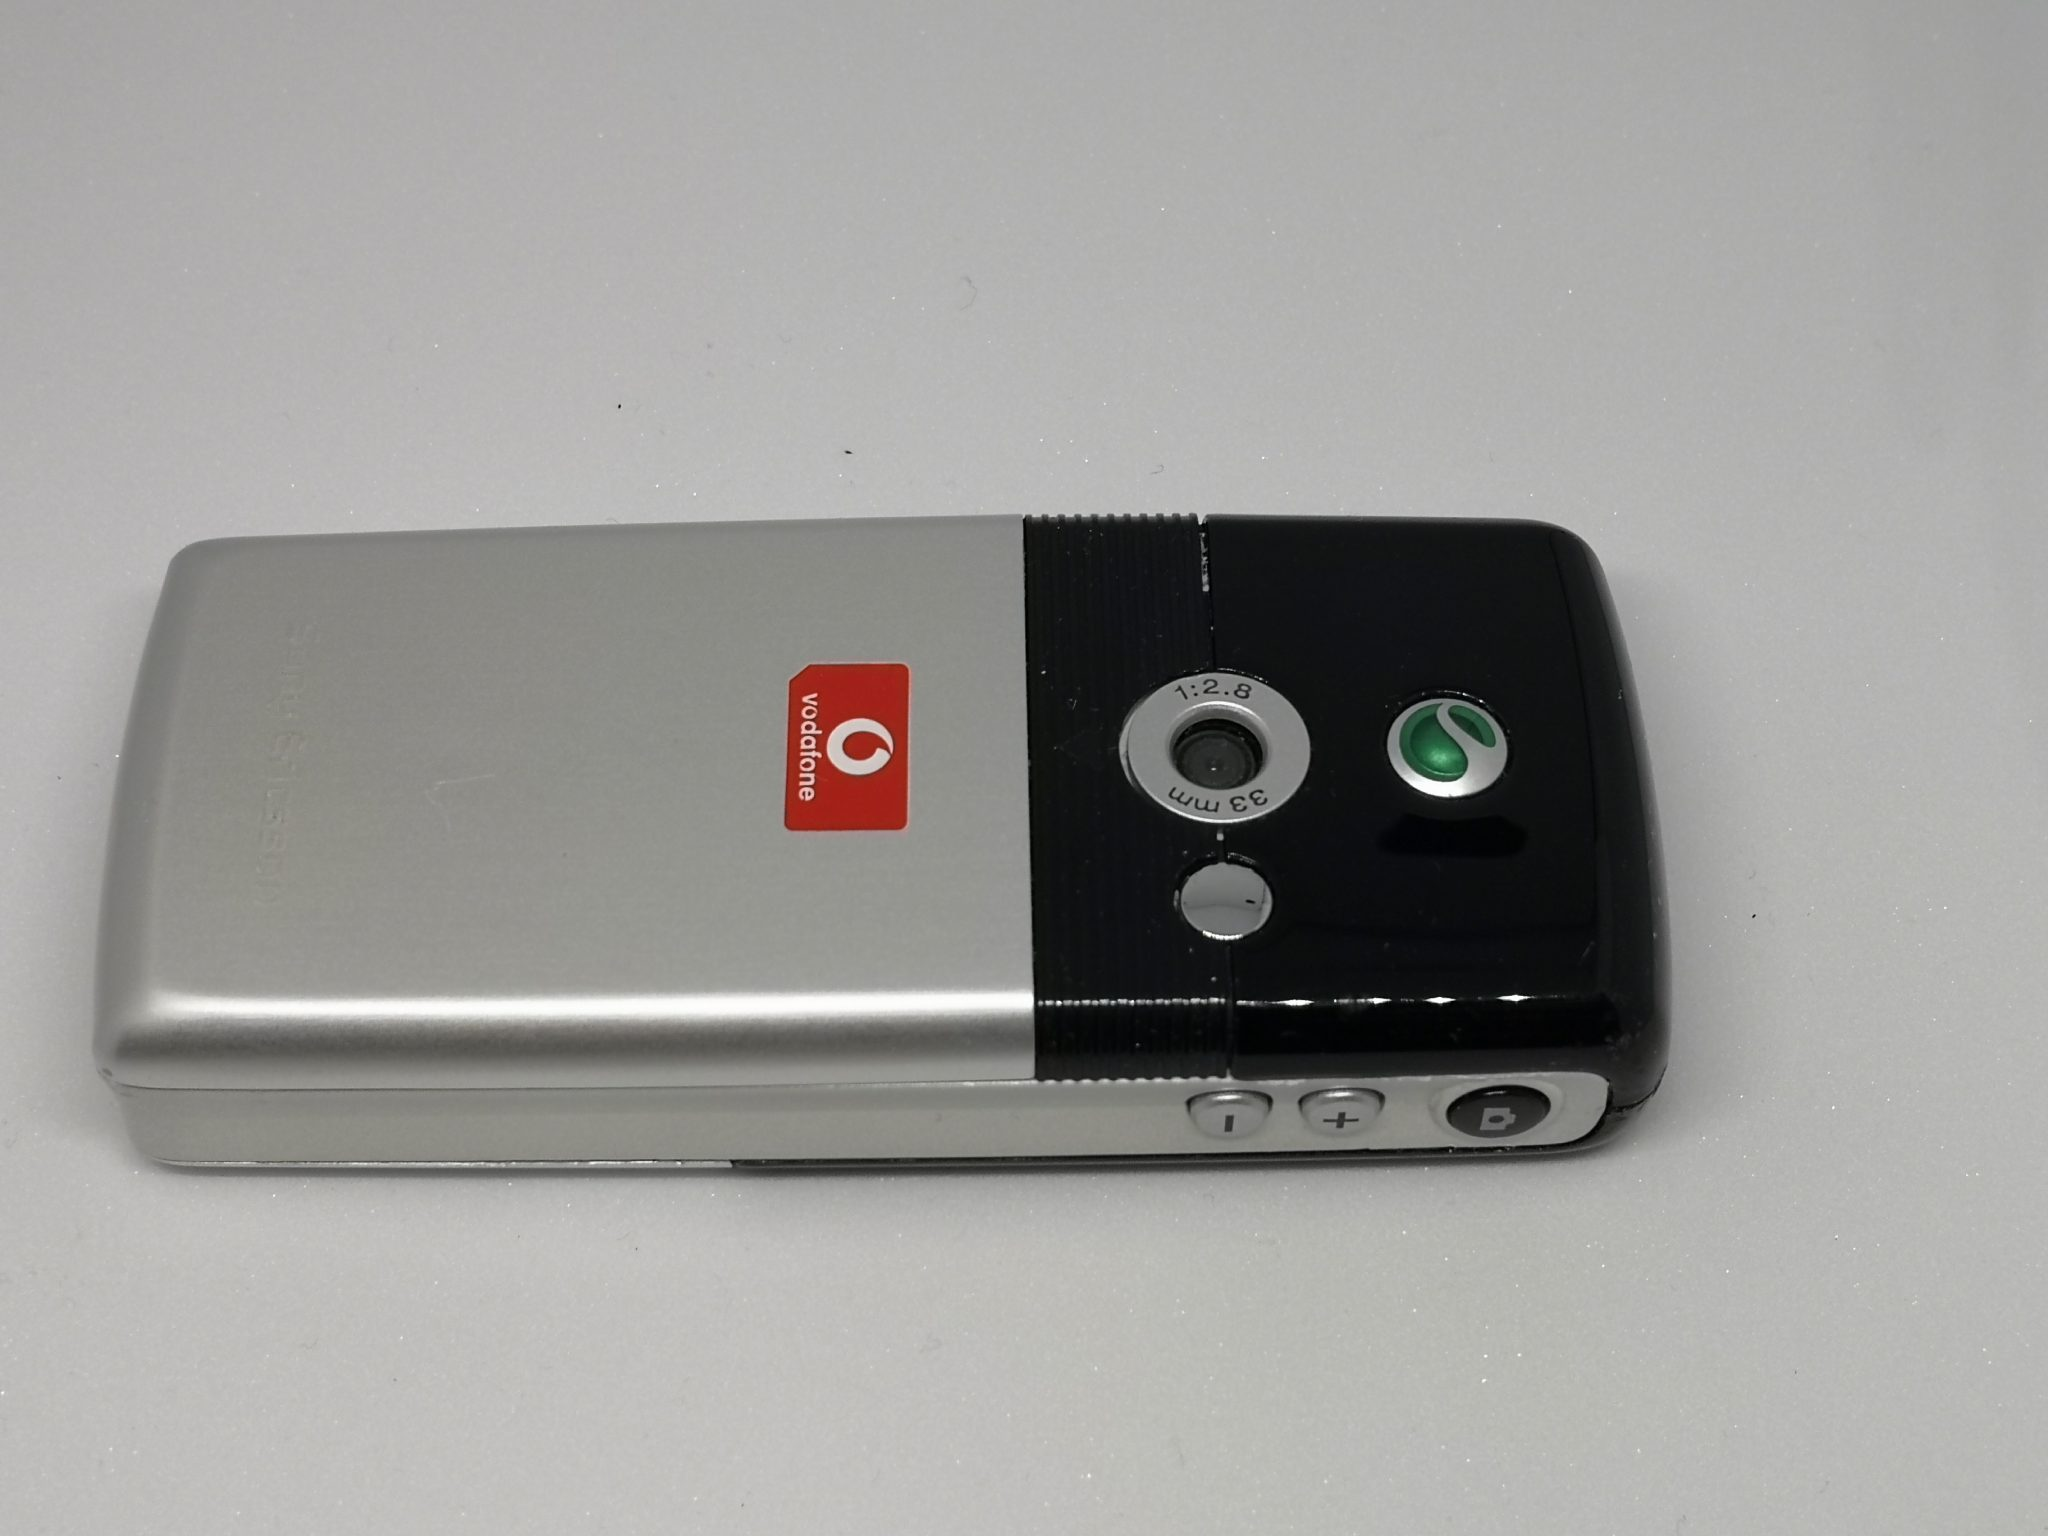 Sony Ericsson T610 Classic Phone Review - A Game Changer For the Masses